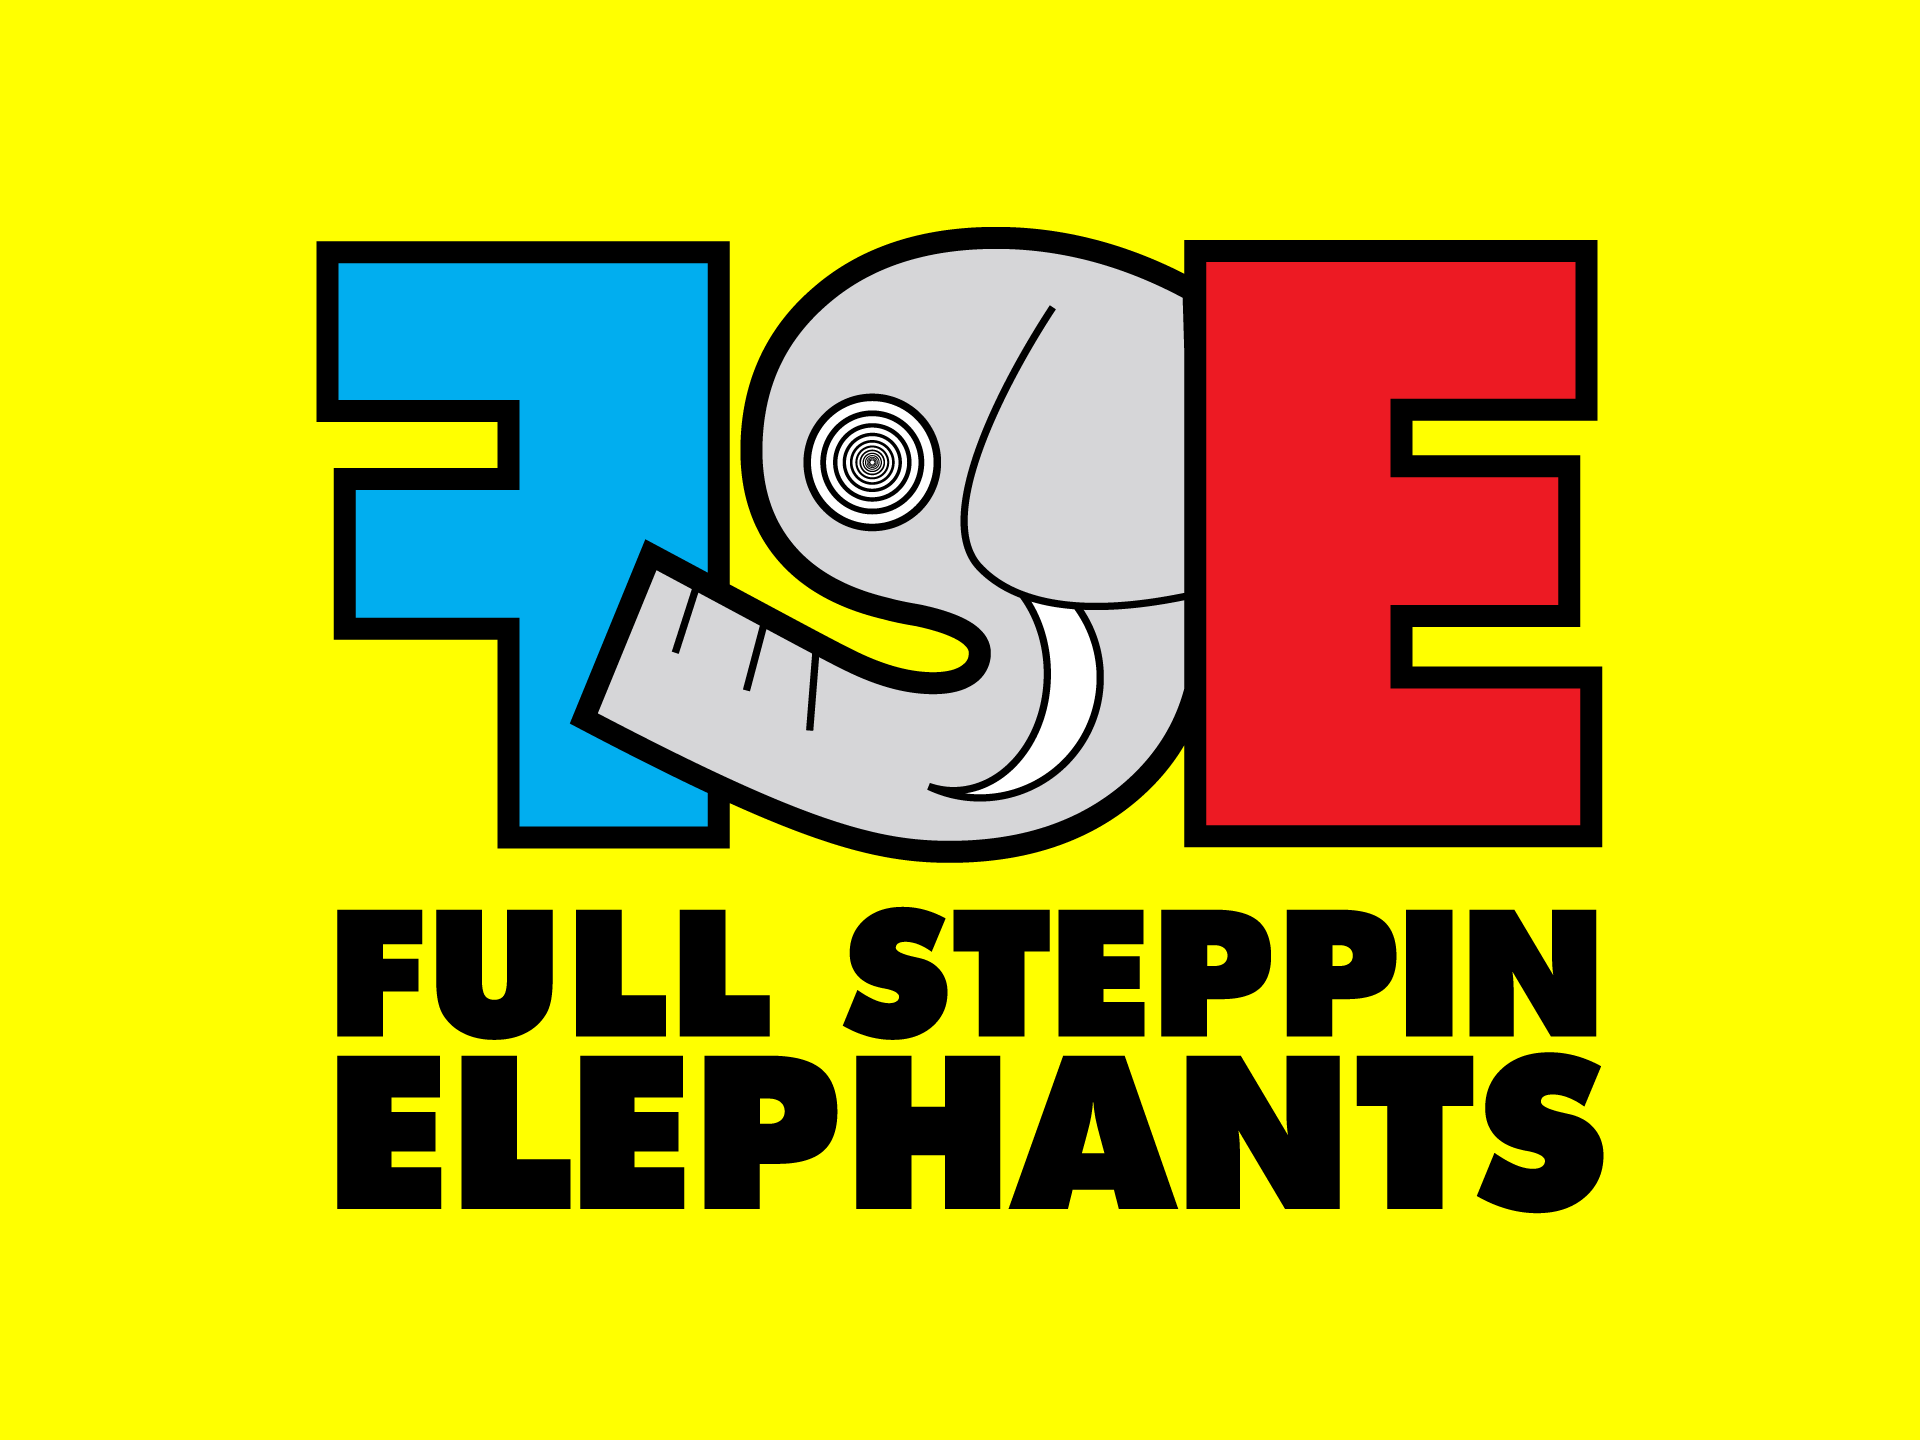 Full Steppin' Elephants